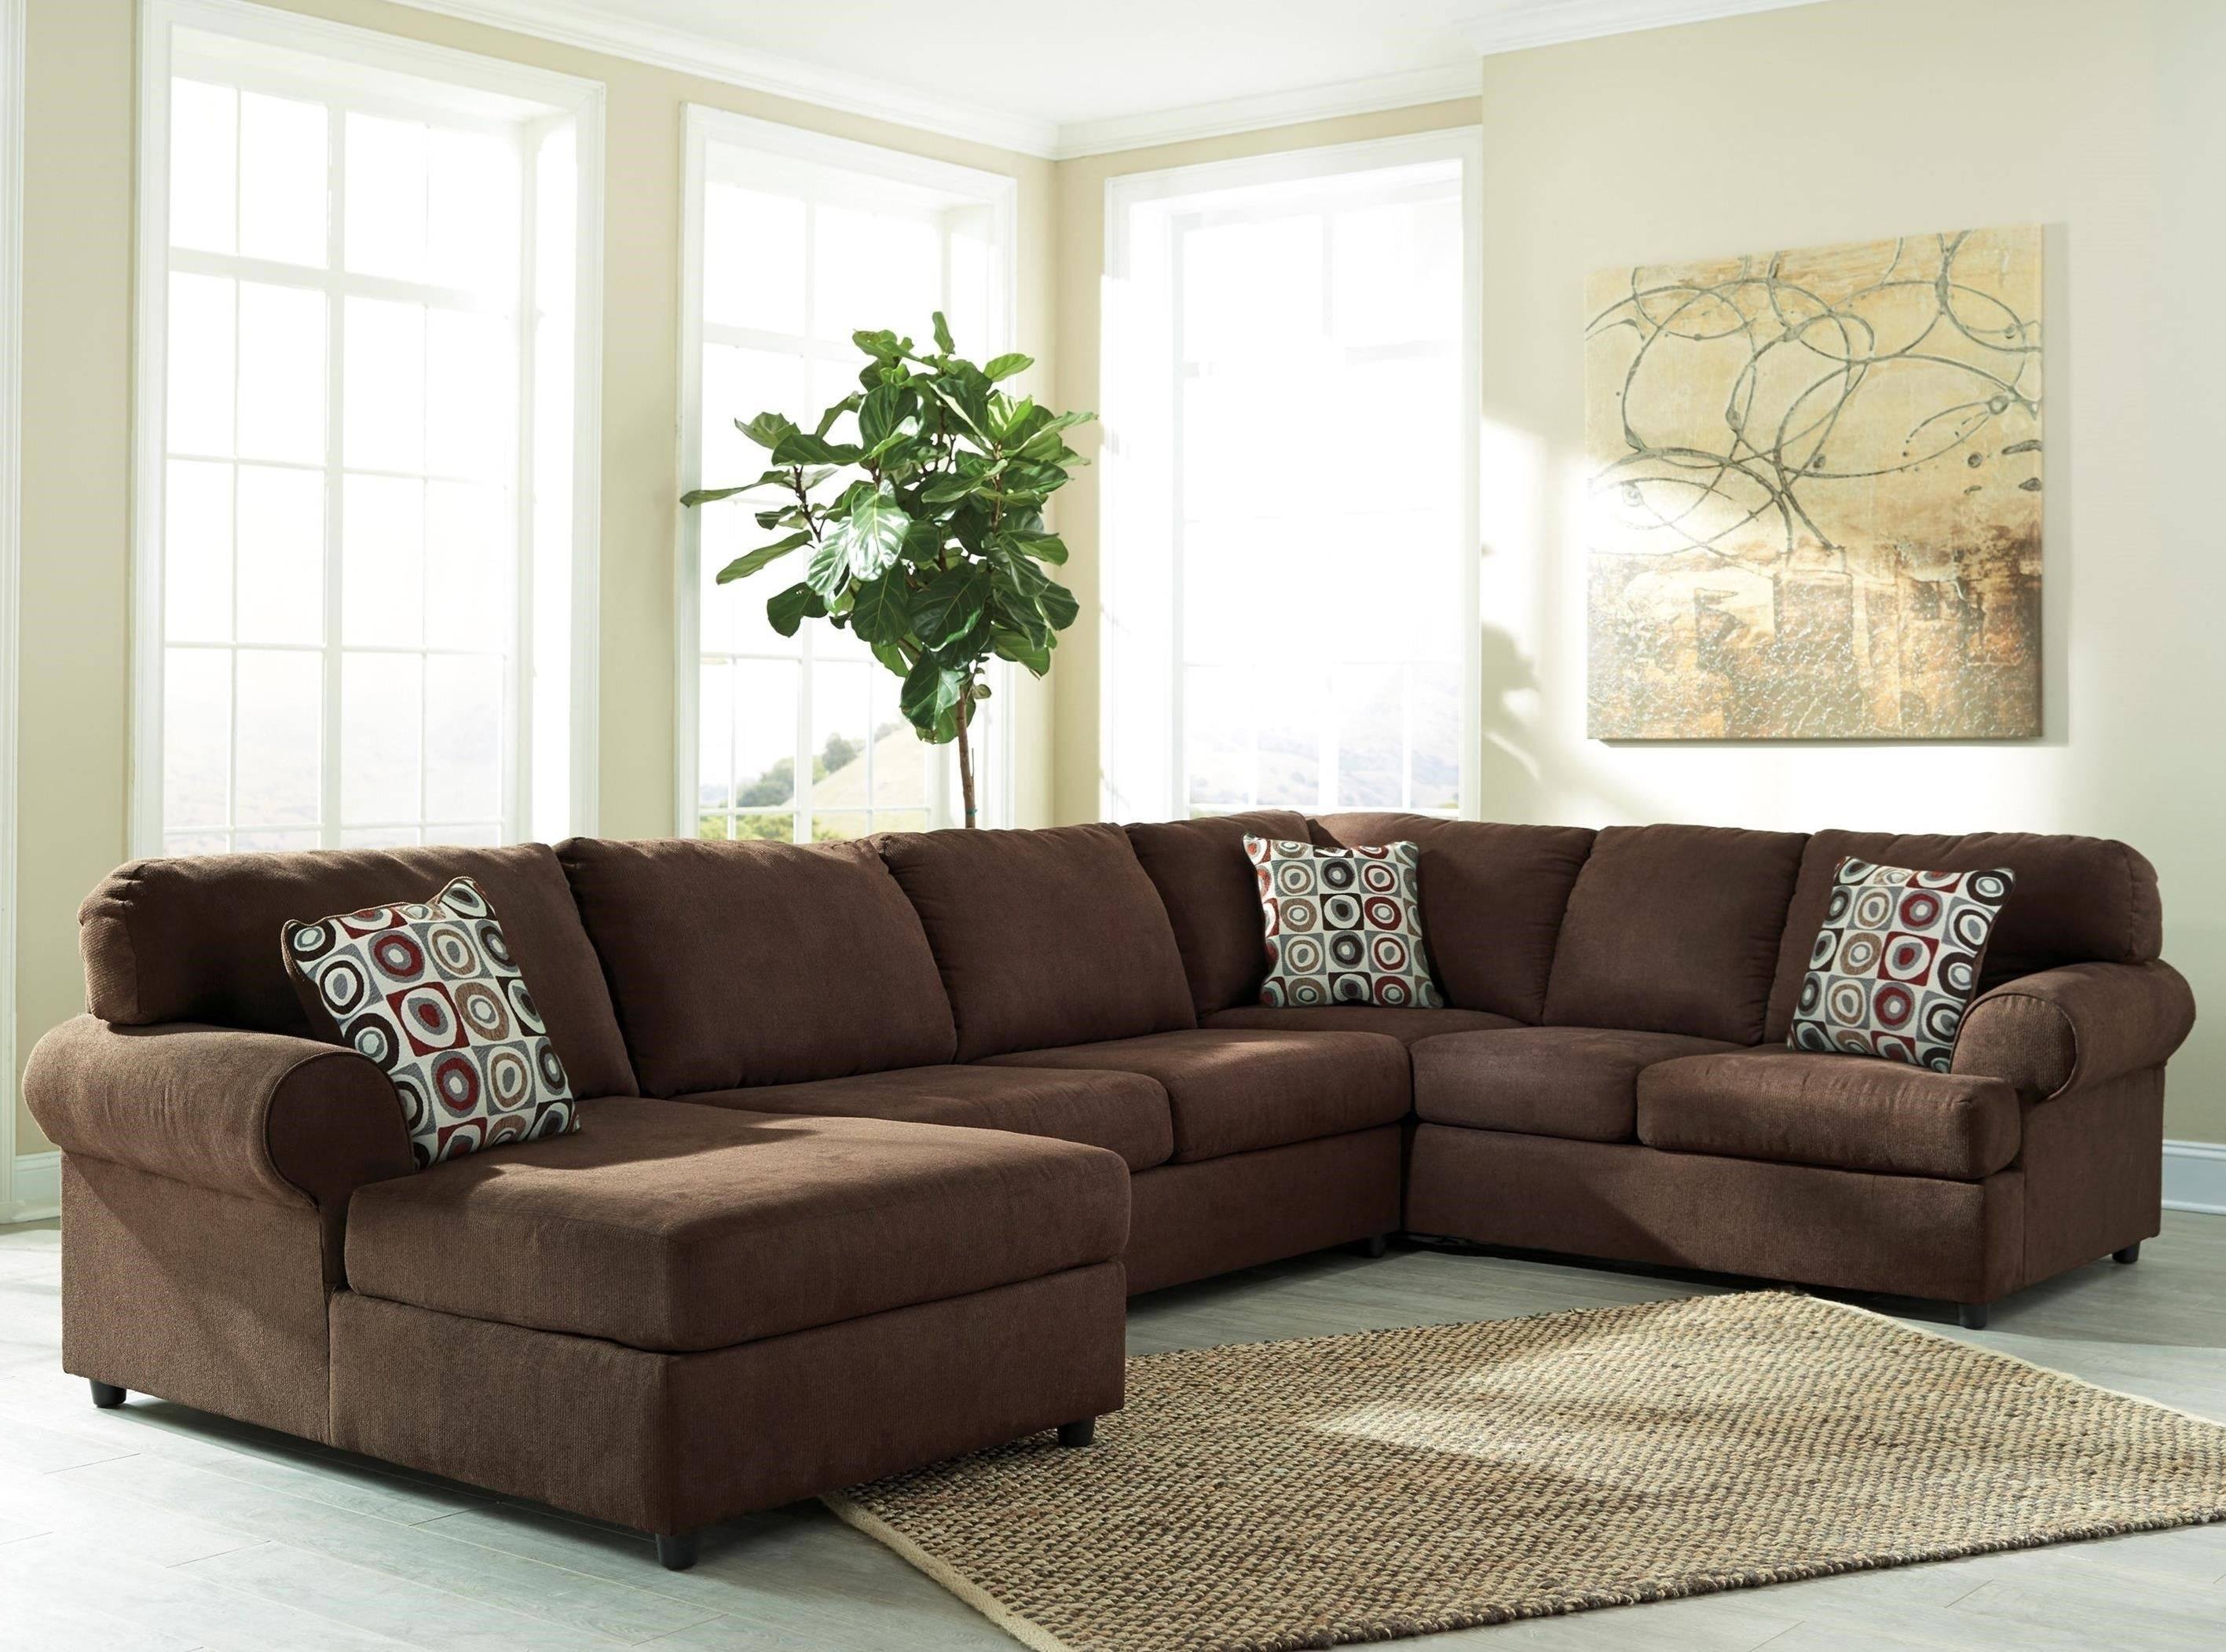 Jayceon 3-Piece Sectional With Left Chaisesignature Design in Royal Furniture Sectional Sofas (Image 7 of 10)